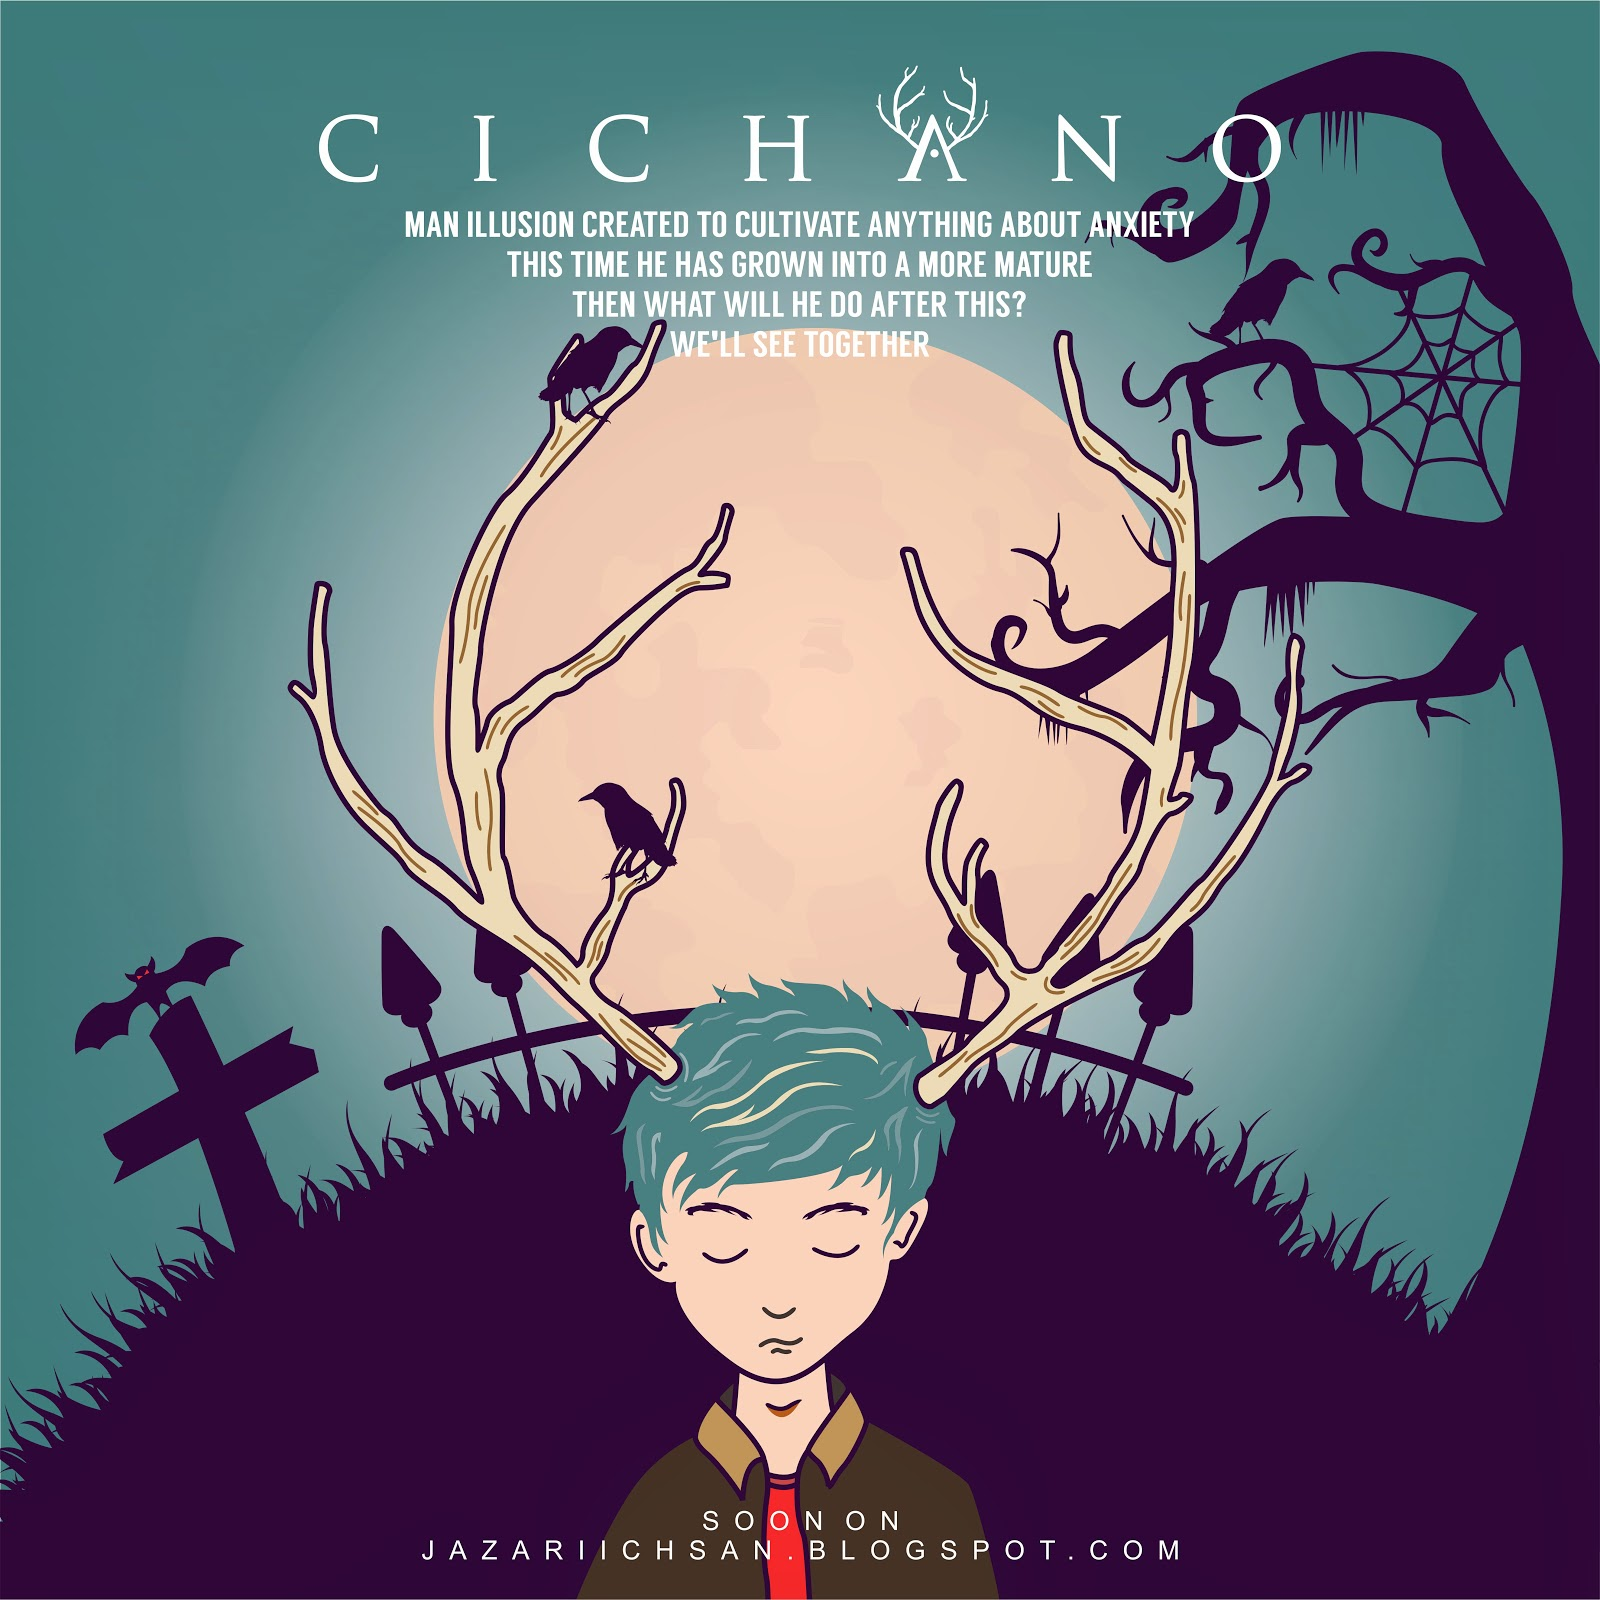 cichano art creative design story by muhammad jazari ichsan